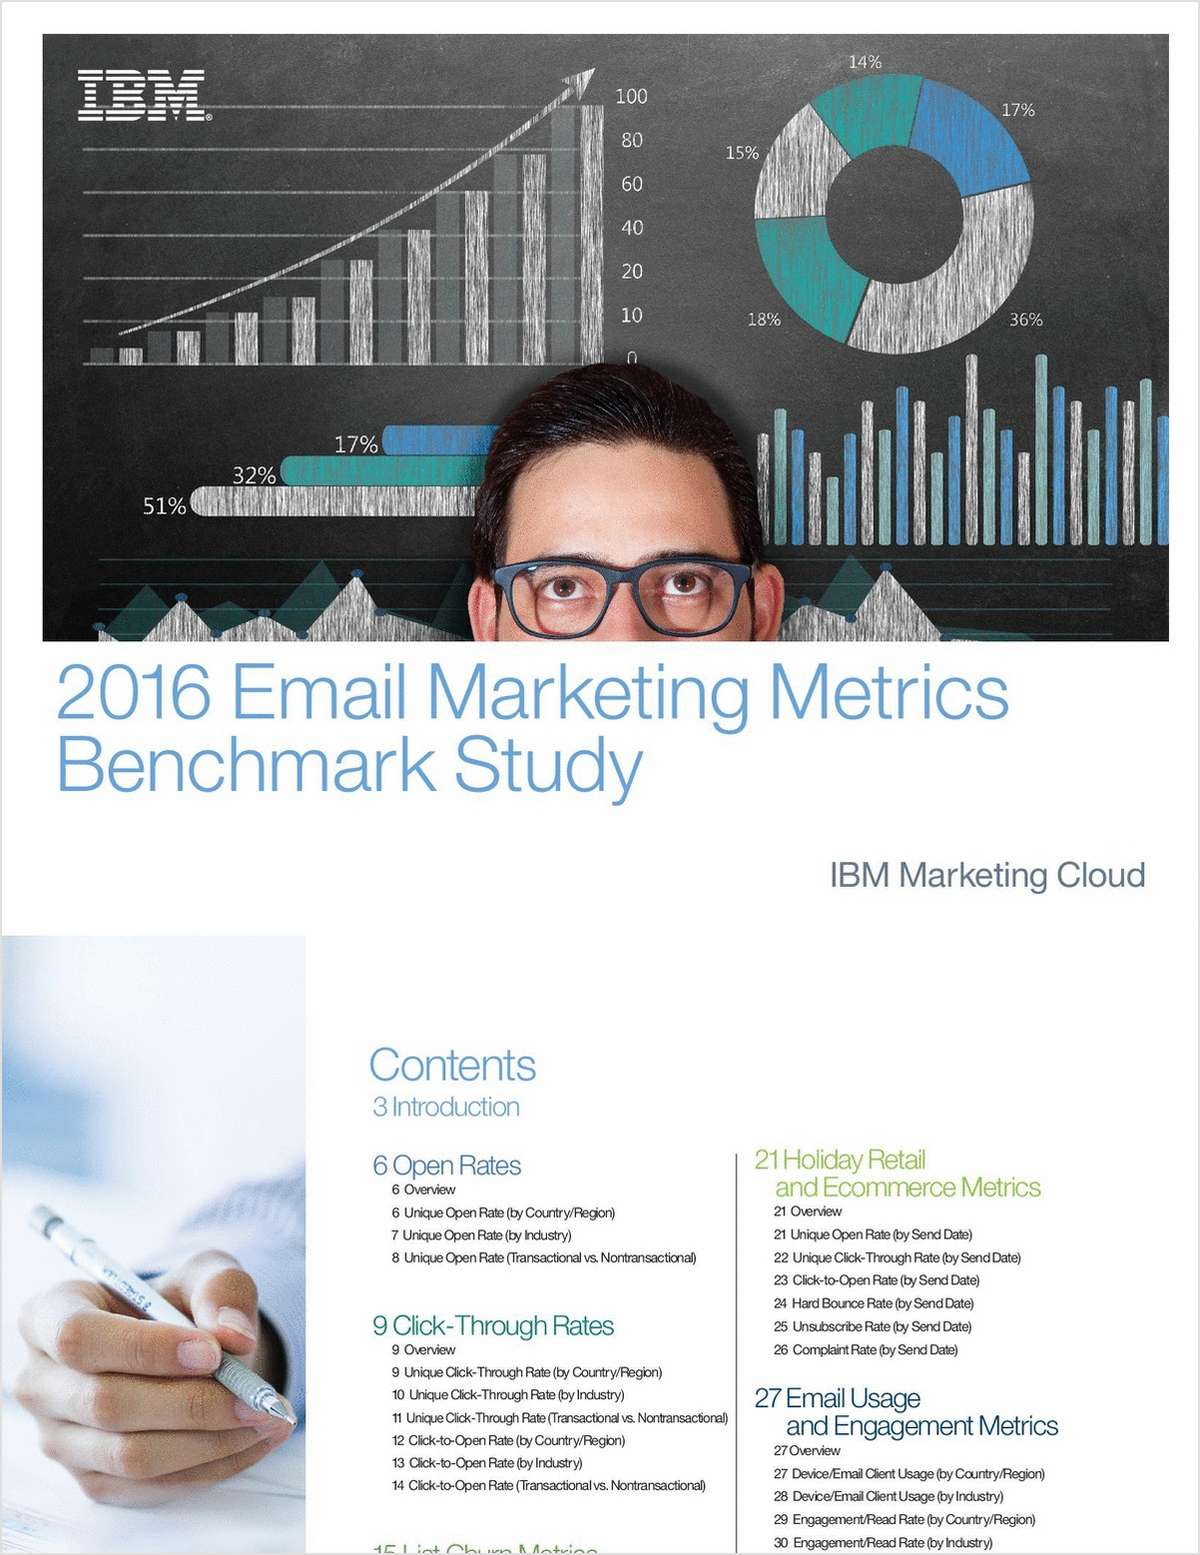 2016 Email Marketing Metrics Benchmark Study